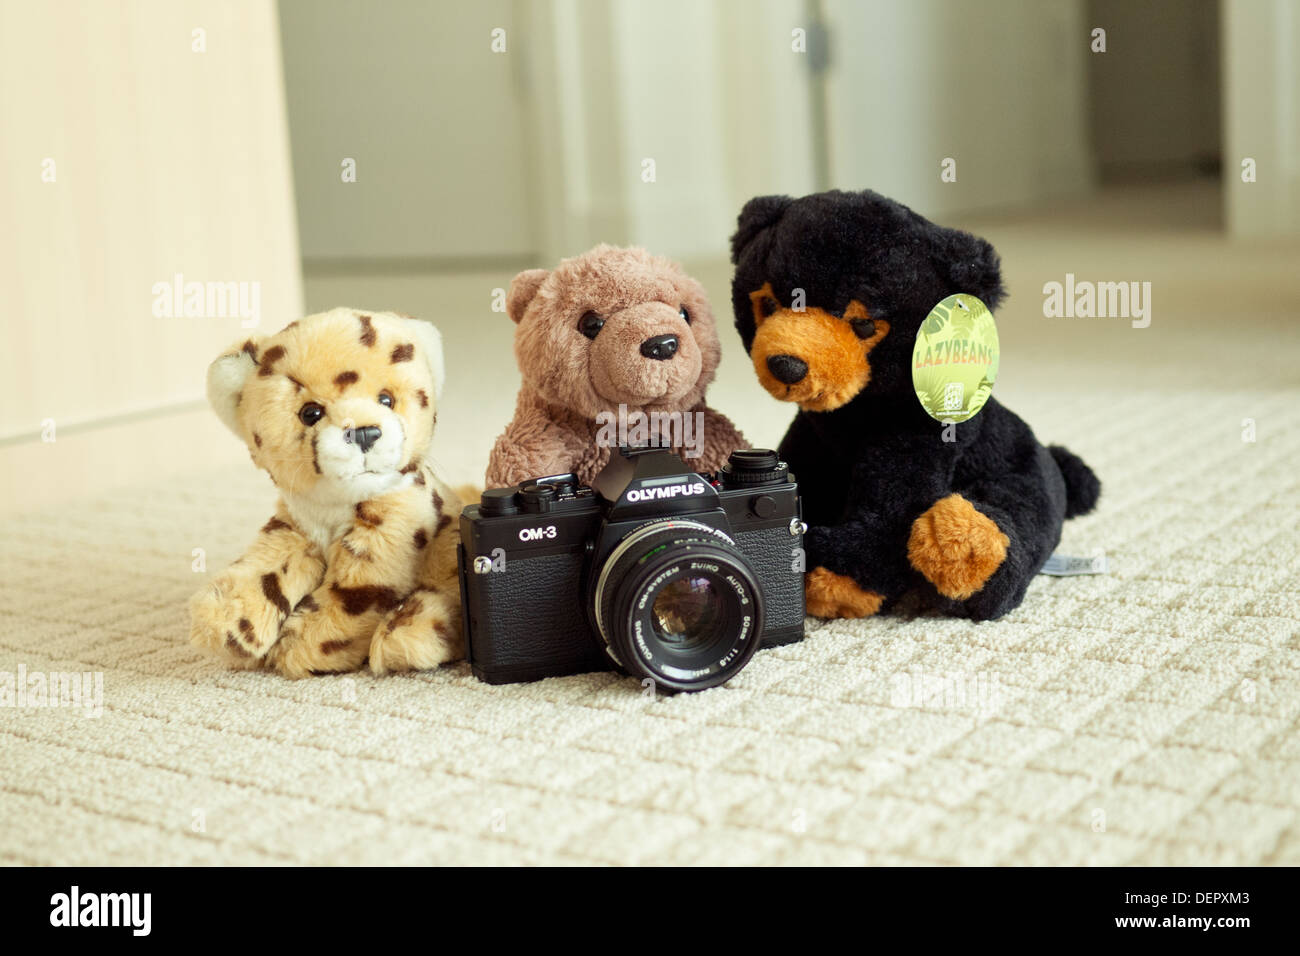 The world's cutest cheetah, brown bear and black bear pose with the legendary Olympus OM-3 film SLR camera. - Stock Image